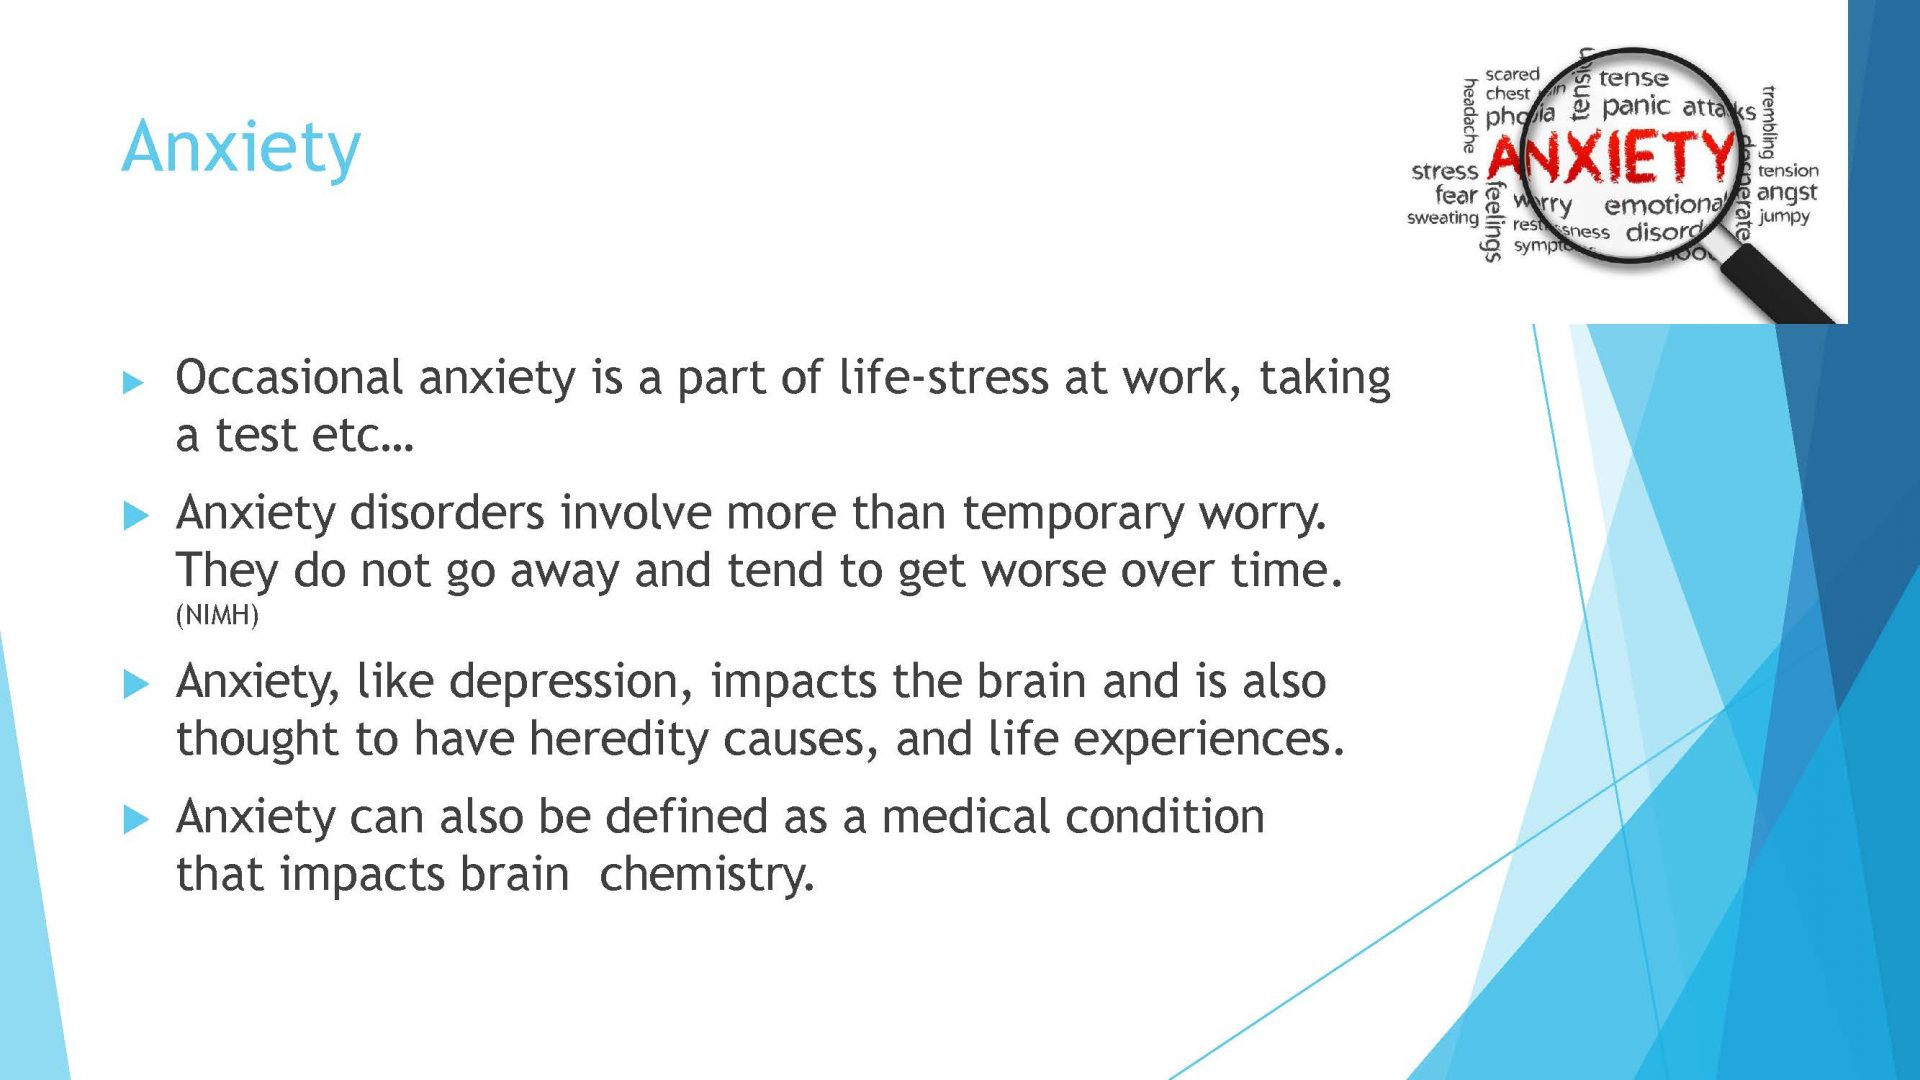 Anxiety disorders involve more than temporary worry. Anxiety like depression impacts the brain.